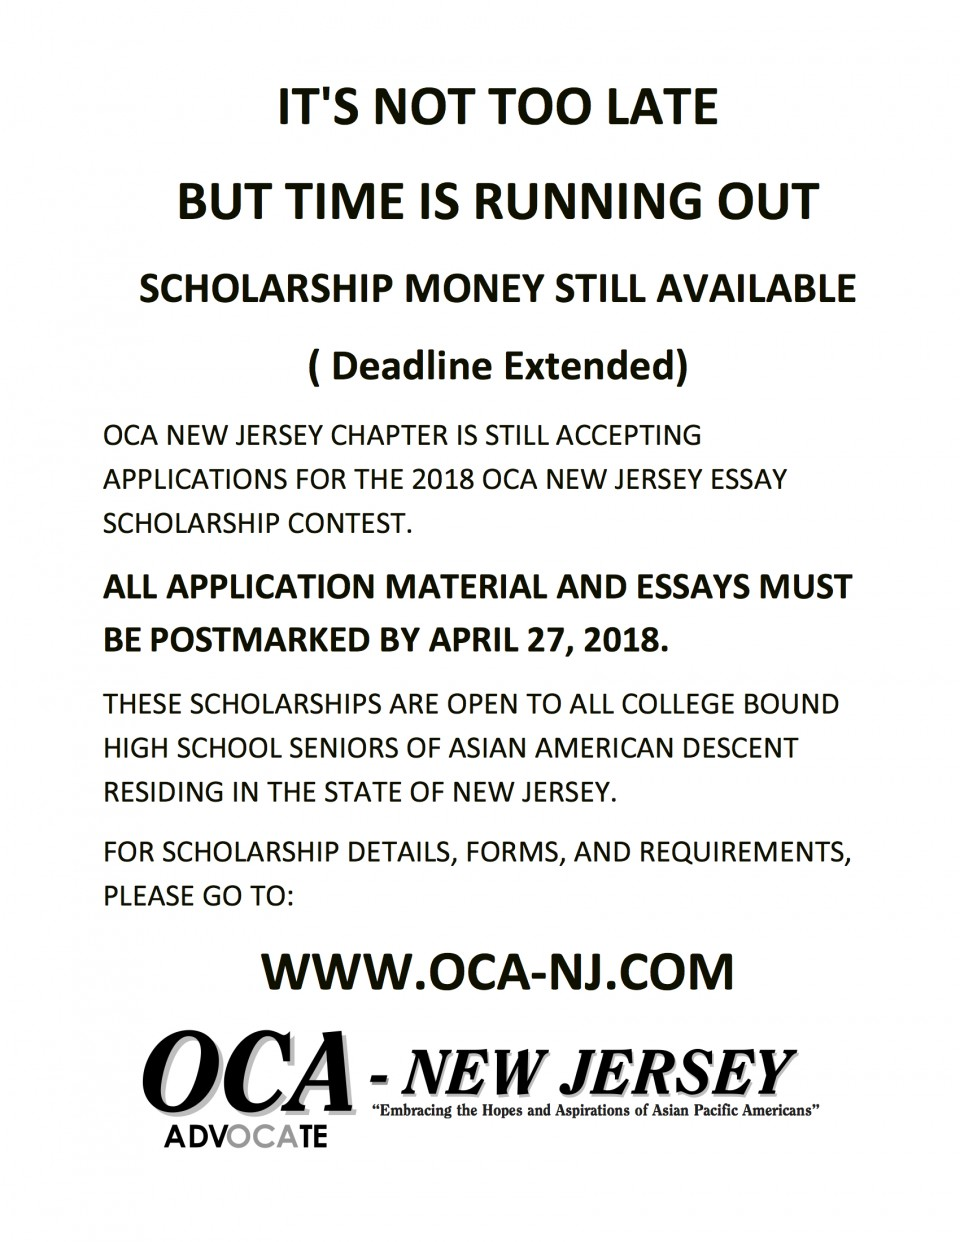 014 Essay Example Scholarships Entended Deadline Oca Nj Shocking For High School Sophomores No 2018 960